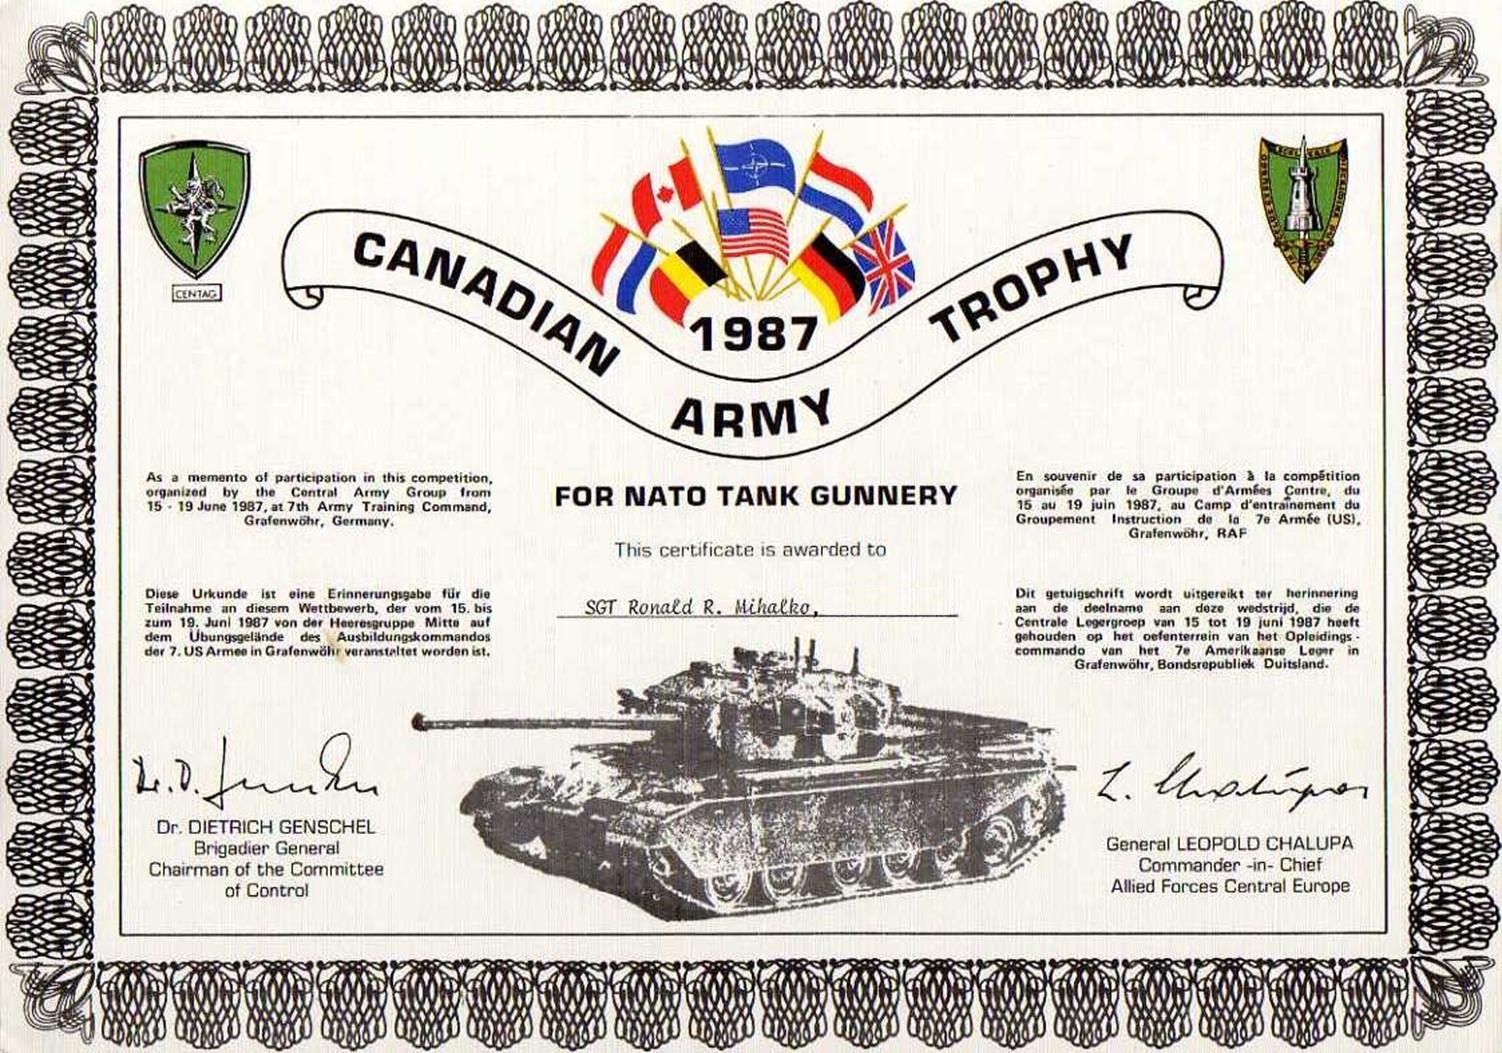 US Army 4-8 Cavalry 3rd Armor AD CAT 1987 Canadian Army Trophy tank patch